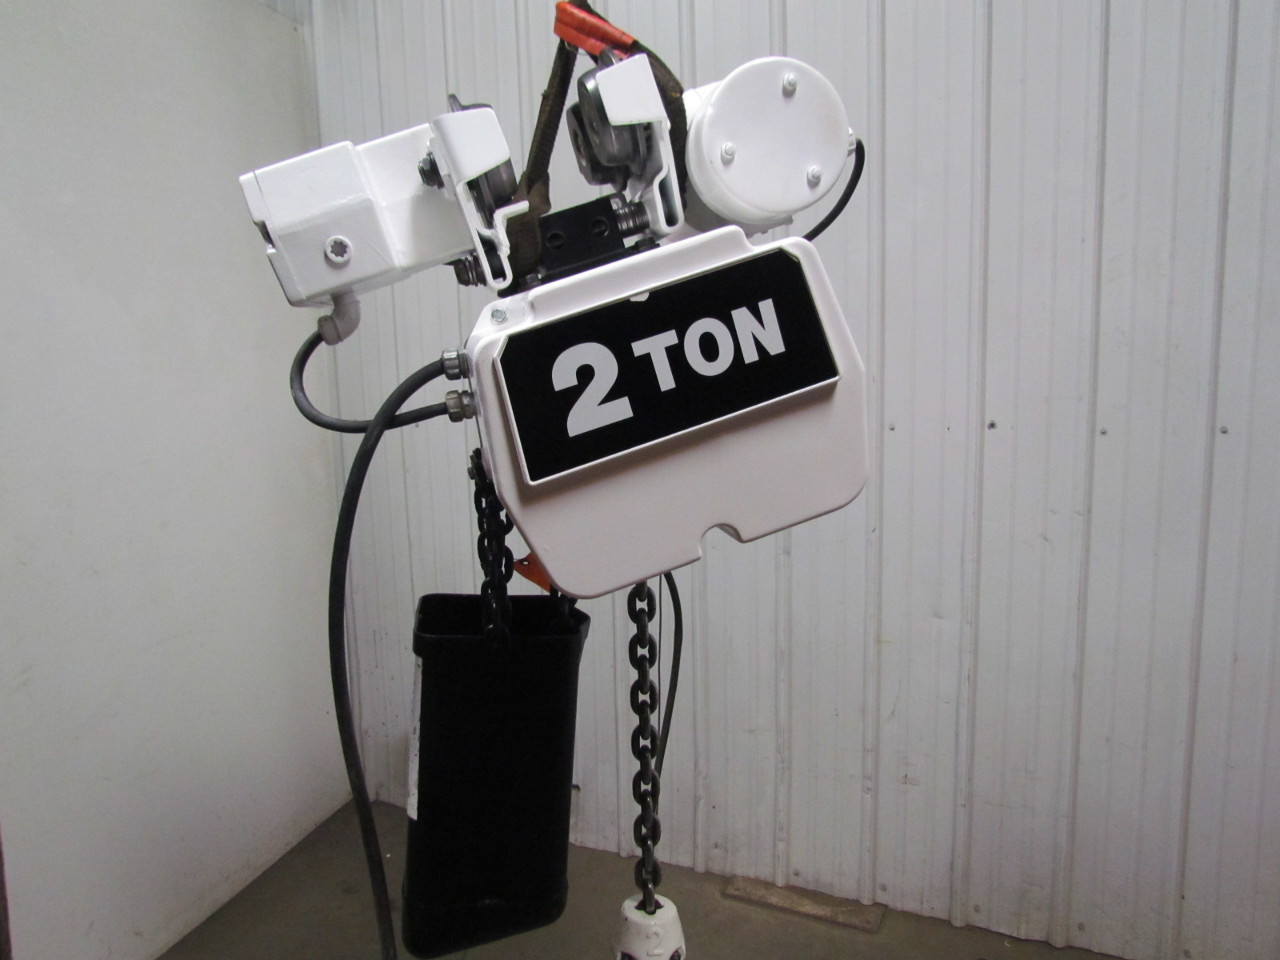 Coffing ec4016 3 2 ton electric chain hoist power trolley for 2 ton hoist with motorized trolley